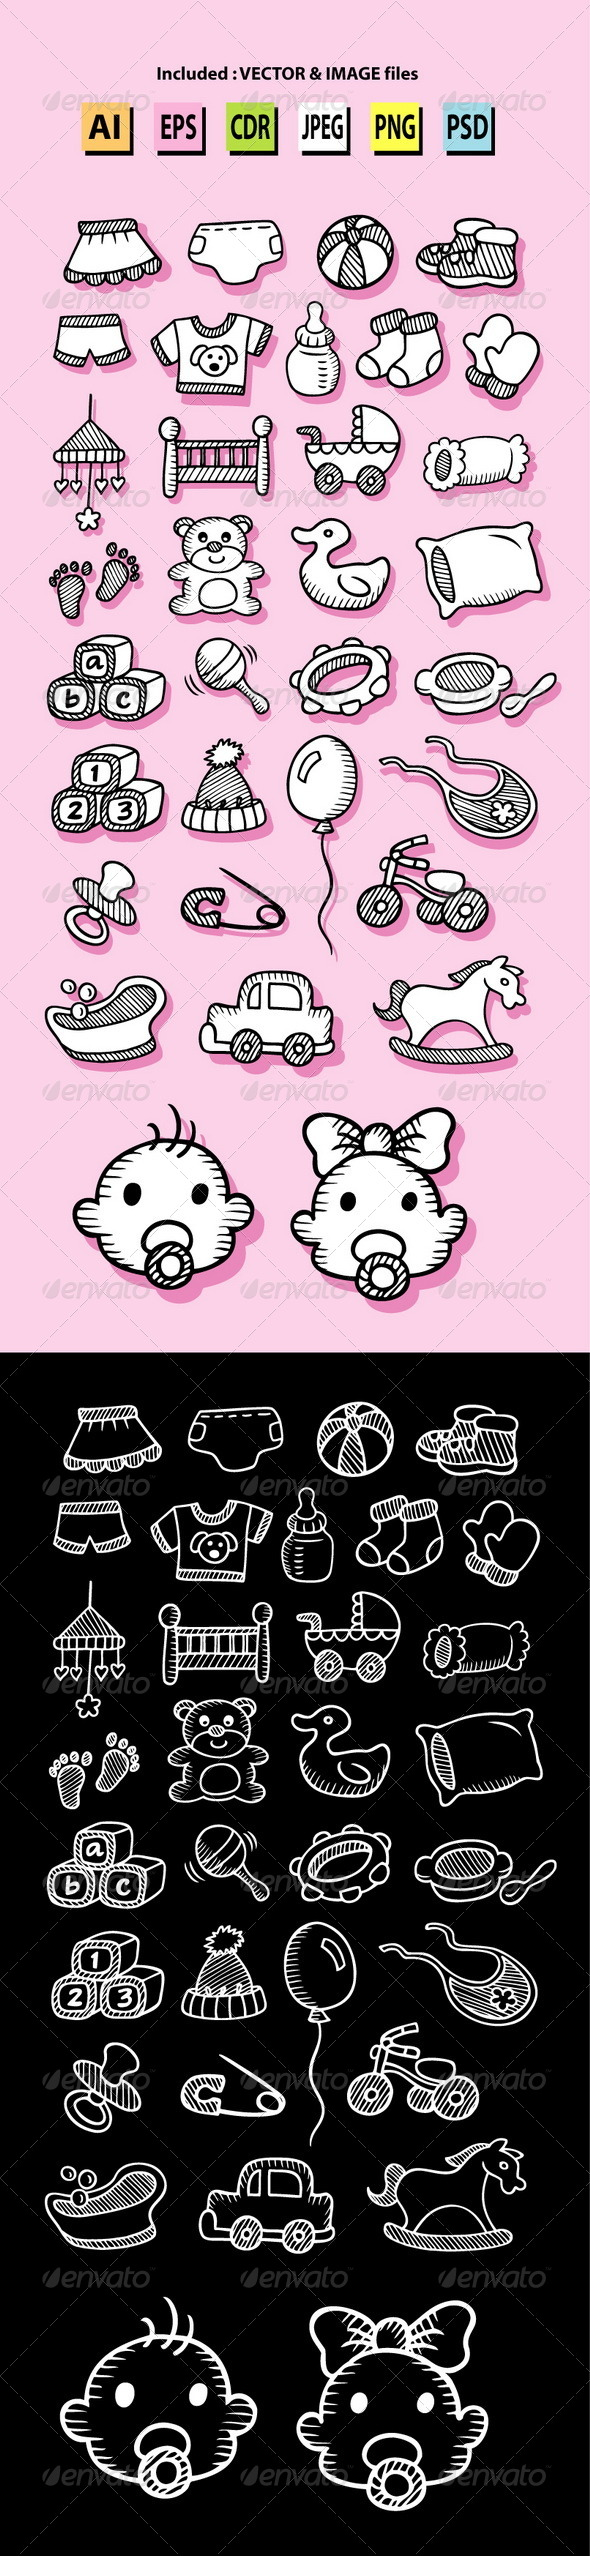 GraphicRiver Set of Baby Icon Sketches 6002857